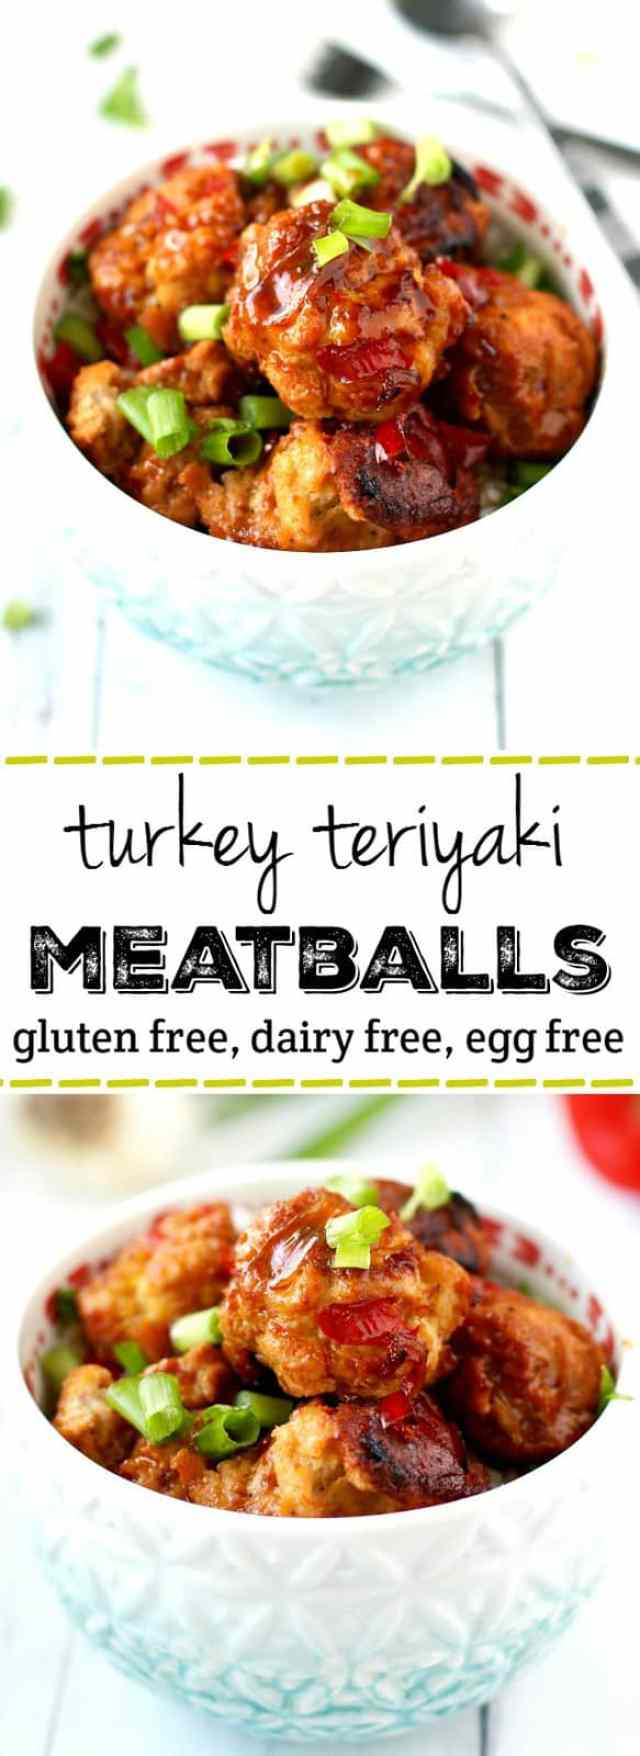 Turkey teriyaki meatballs are full of flavor and are perfect for a family friendly dinner! Gluten free and egg free.